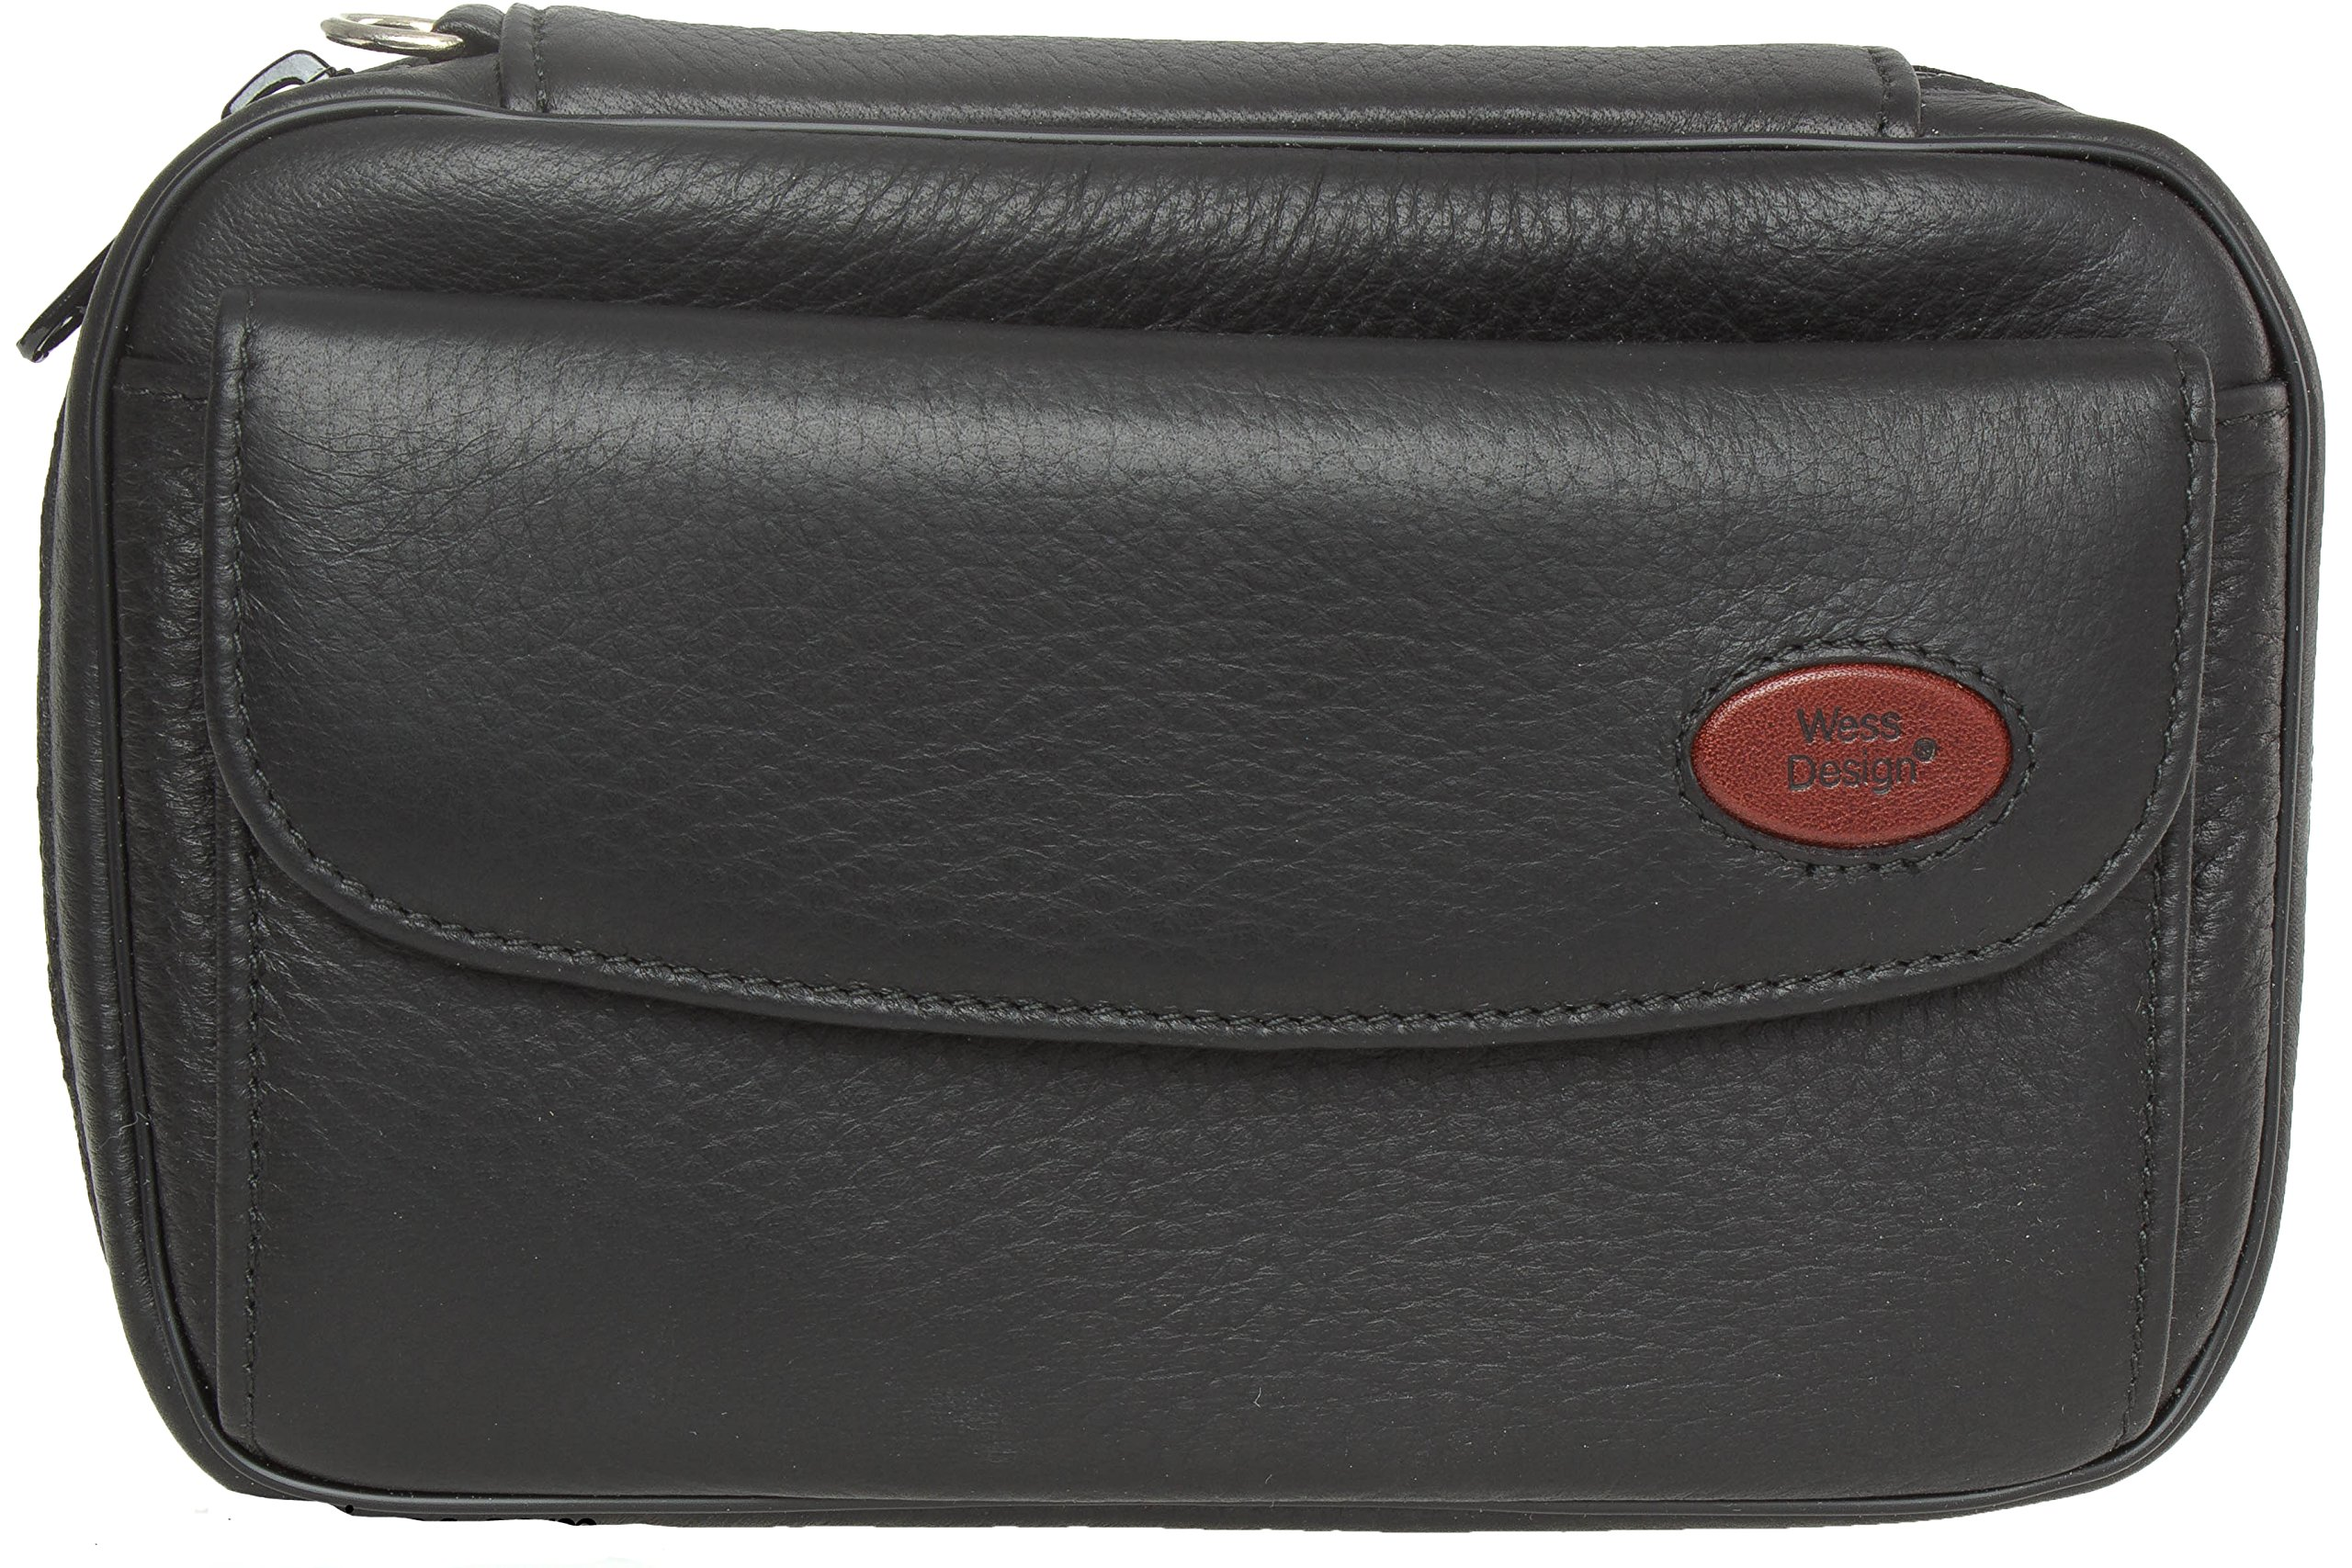 Martin Wess Deer 4 Pipe Bag - P154 by Martin Wess